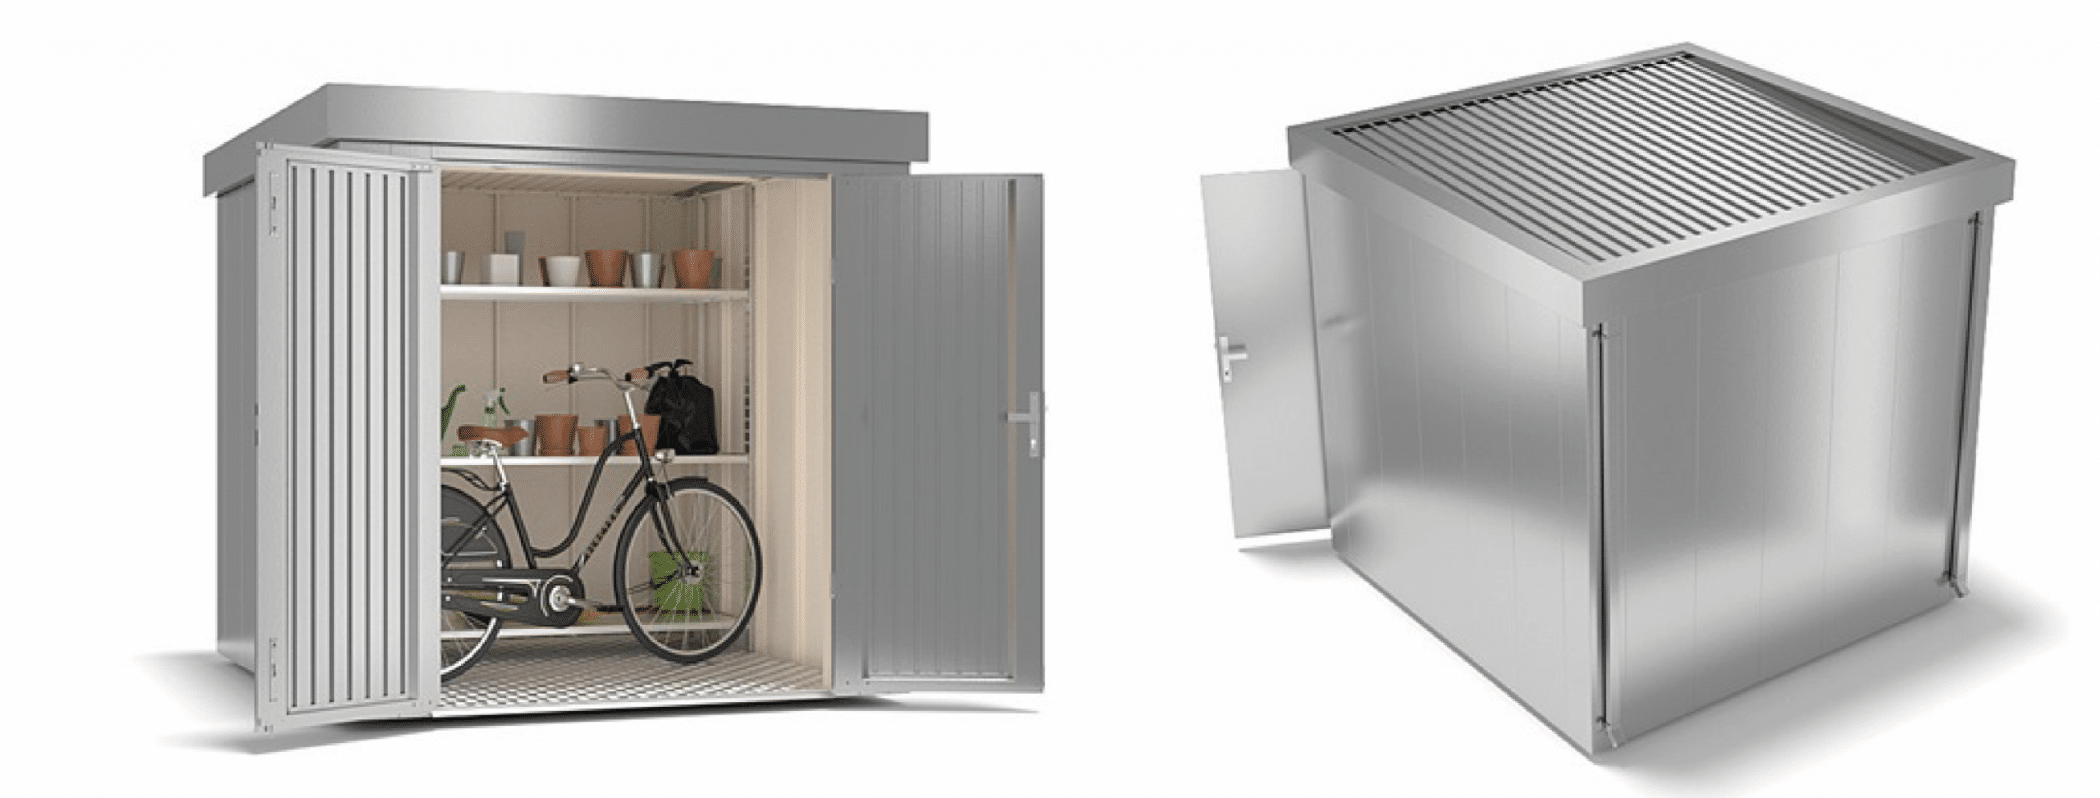 garden shed silver metal front and back view